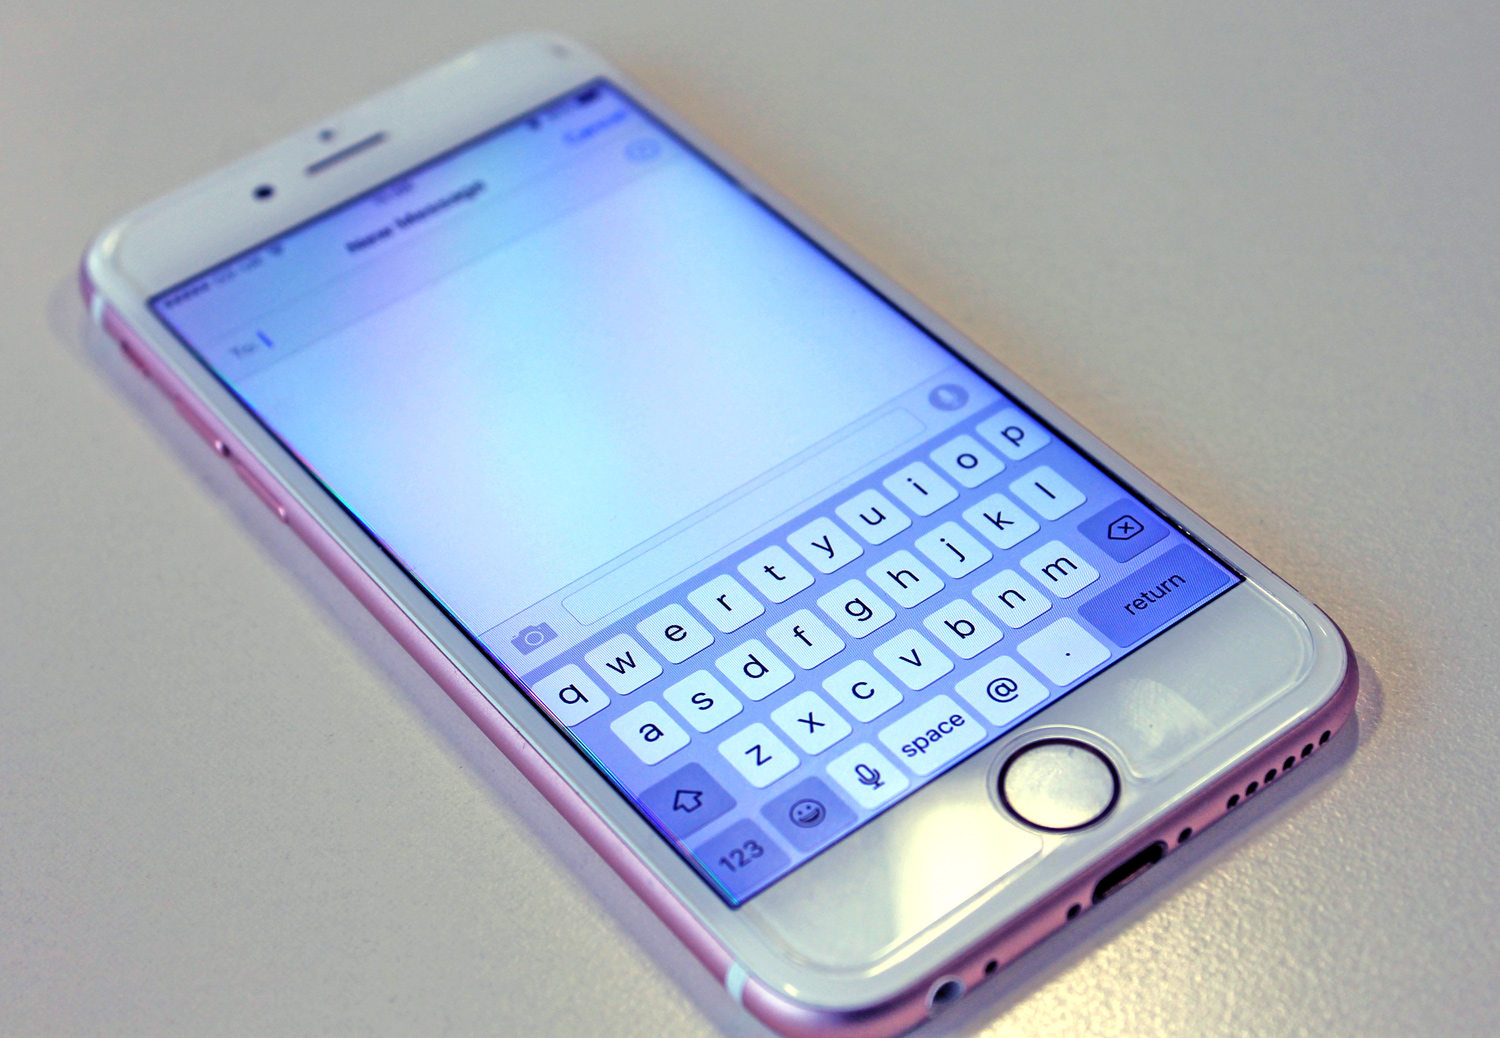 IPhone Home Button Is Round In Shape Which Samsung May Emulate If The  Patent Goes Through IBTimes UK